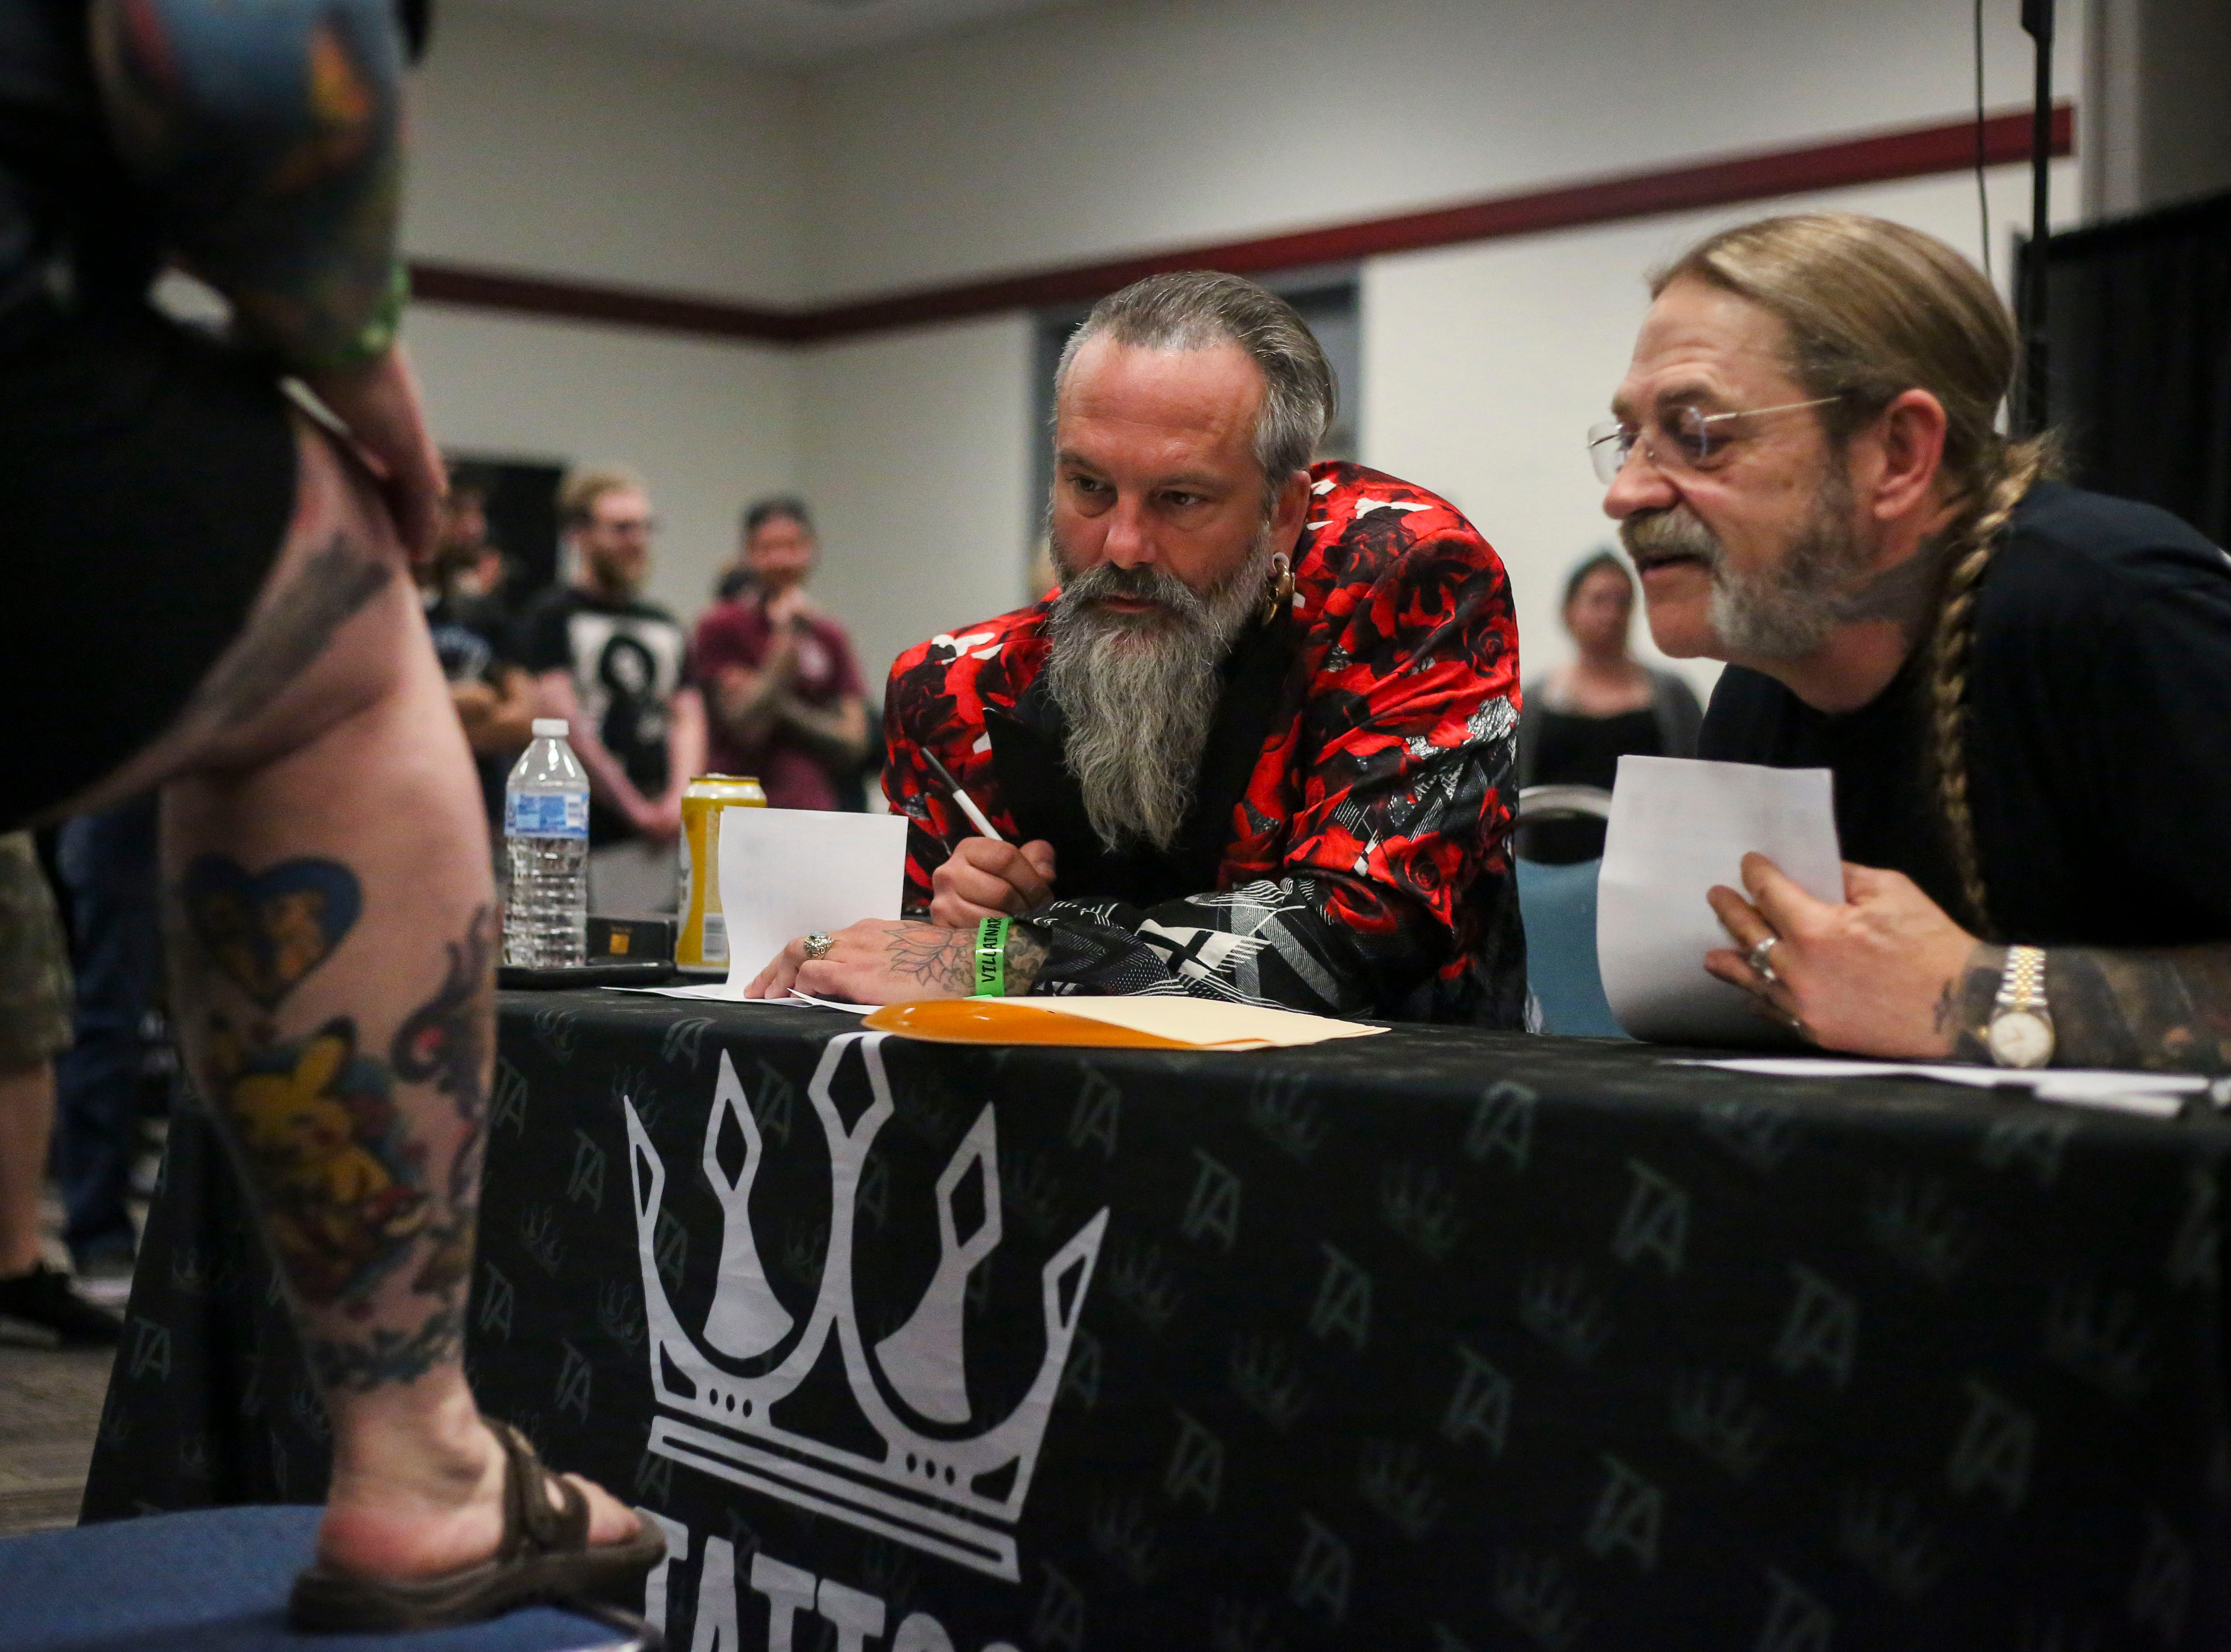 Troy Timpel, Villain Arts, middle, judges Christian Warnest's, left,  tattoo on her shin during the tattoo contest at the 8th Annual Louisville Tattoo Arts Convention put on by Villain Arts at the Kentucky Expo Center in Louisville, Ky. on Saturday, April 13, 2019.